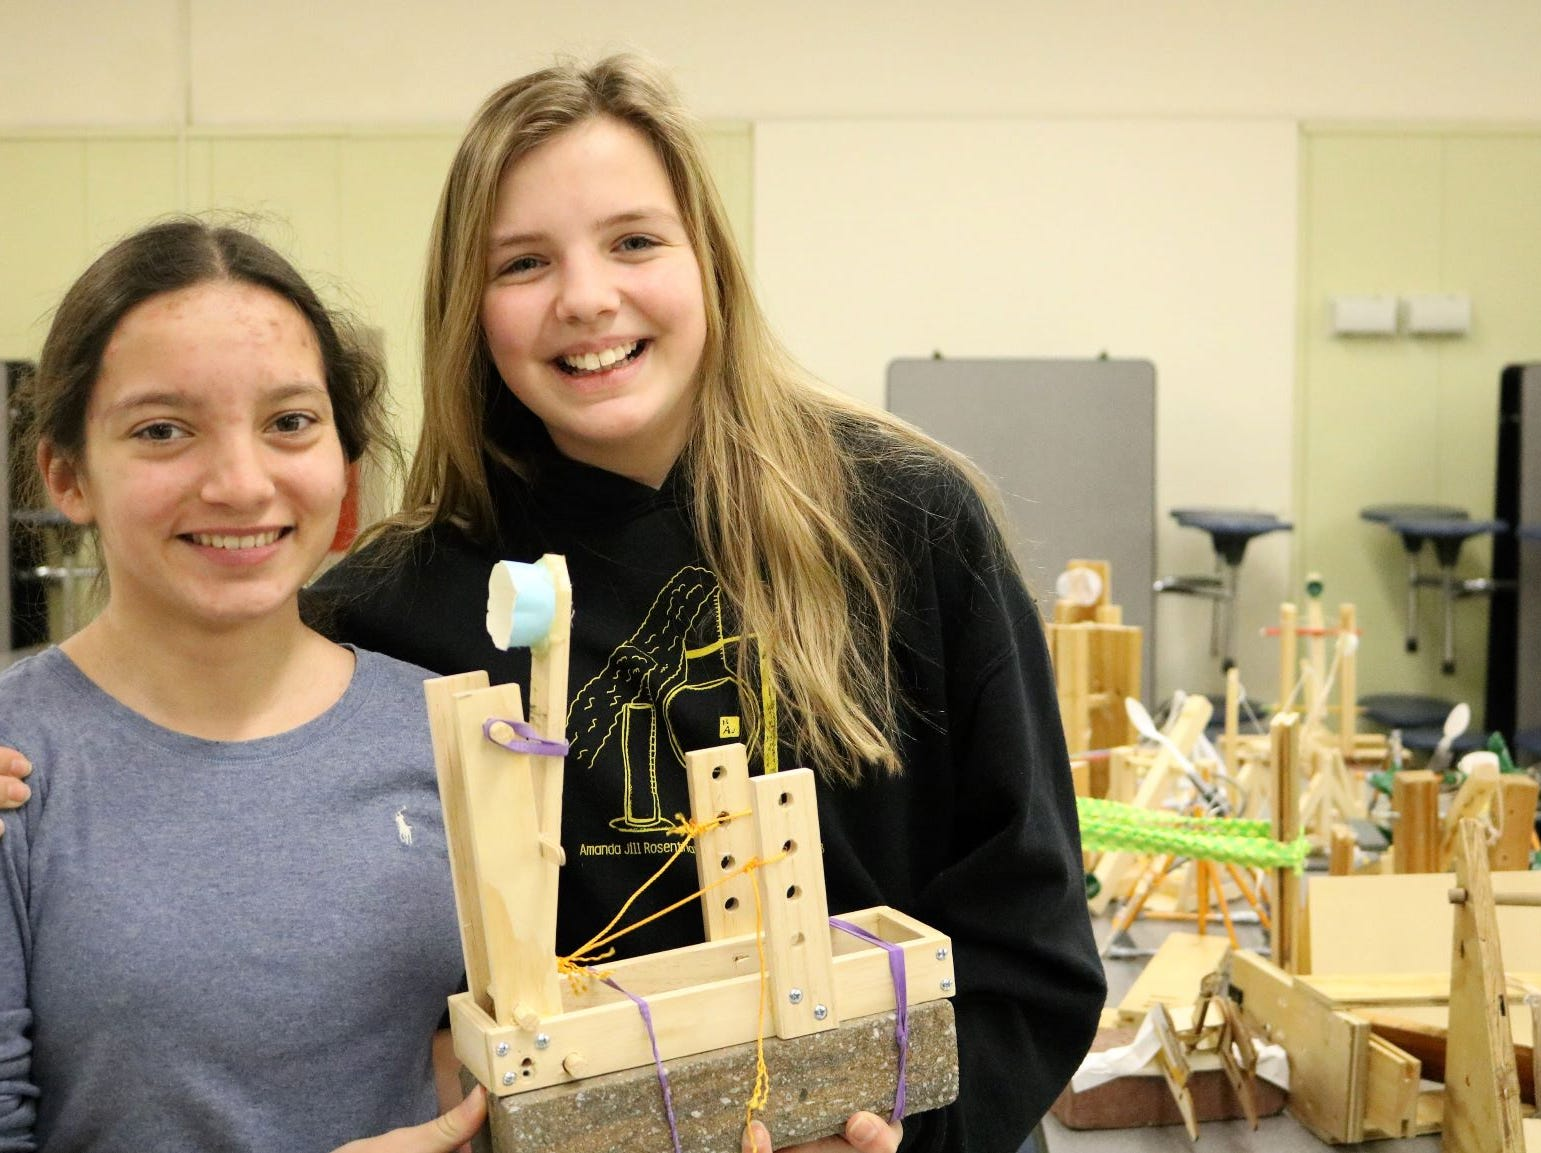 STEM and STEAM opportunities abound for students, such as these Intermediate pupils, across the Westfield Public School District.